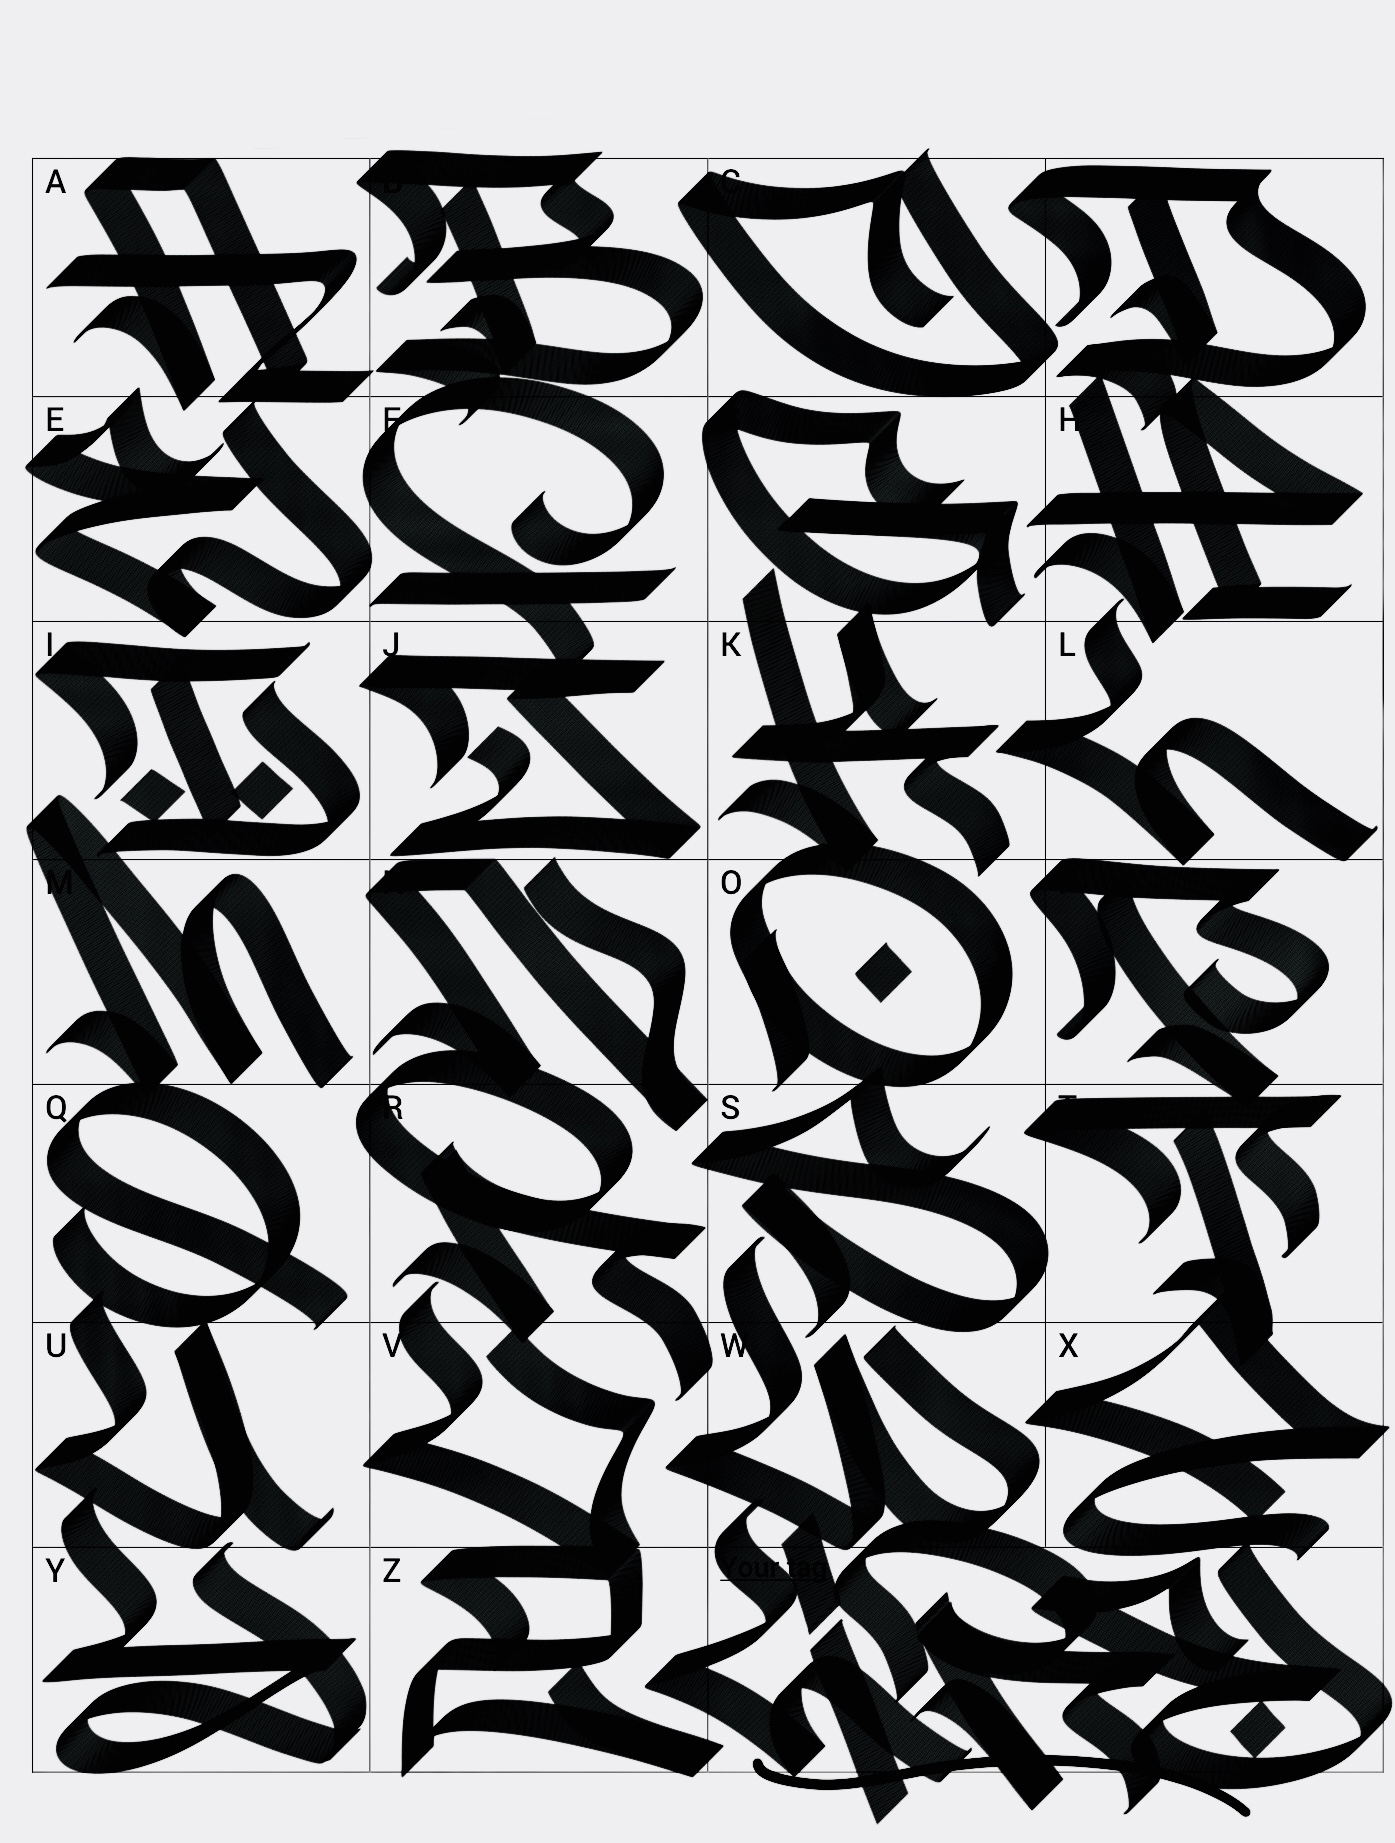 Ranging from the simply straight letters graffiti fonts inspired to the gothic and calligraffiti styles